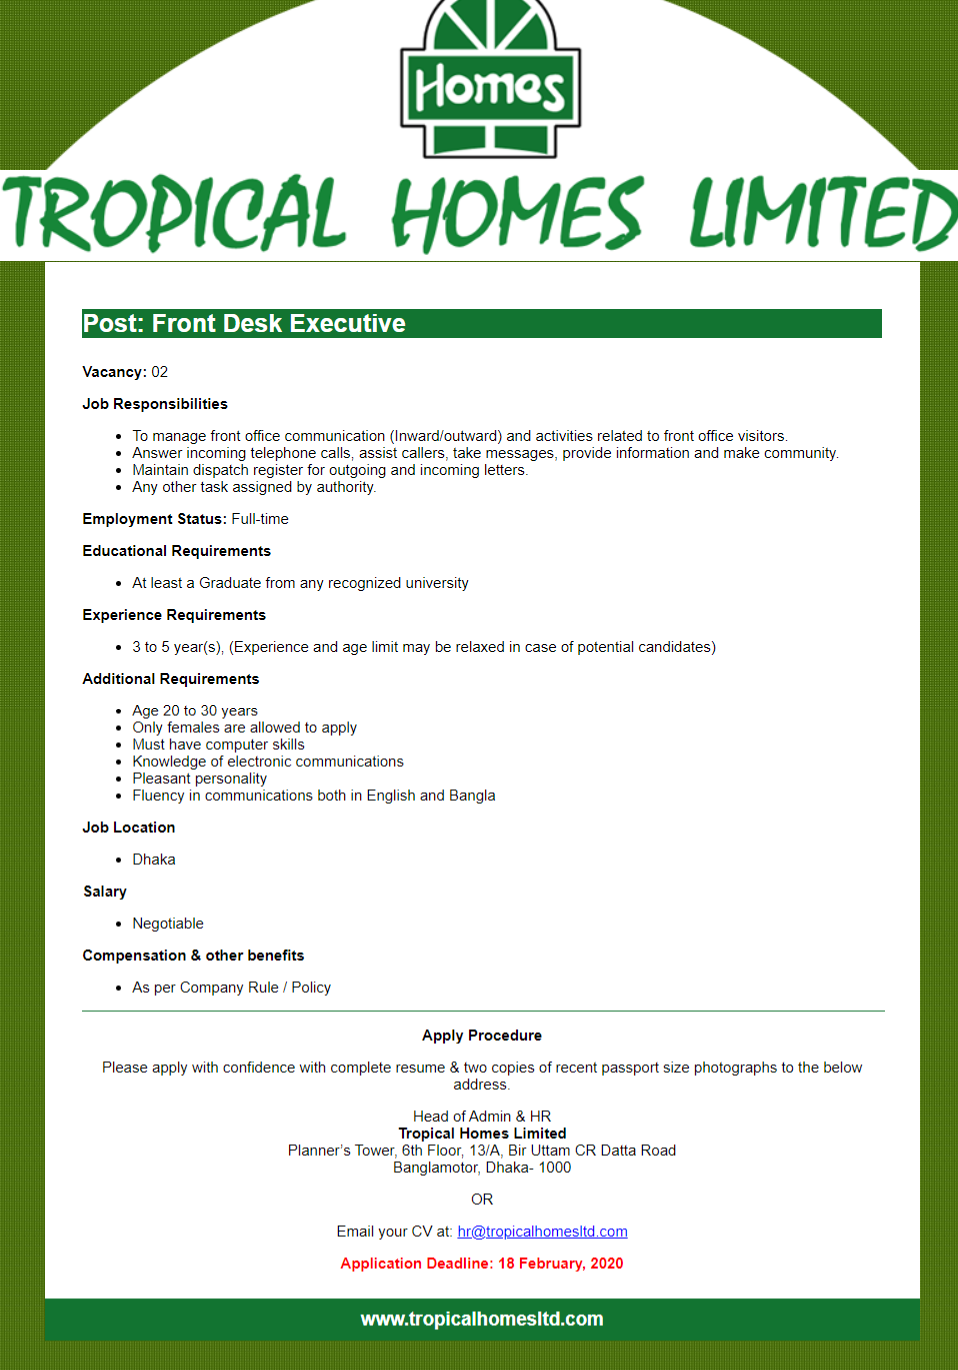 Tropical Homes Limited Job Circular 2020